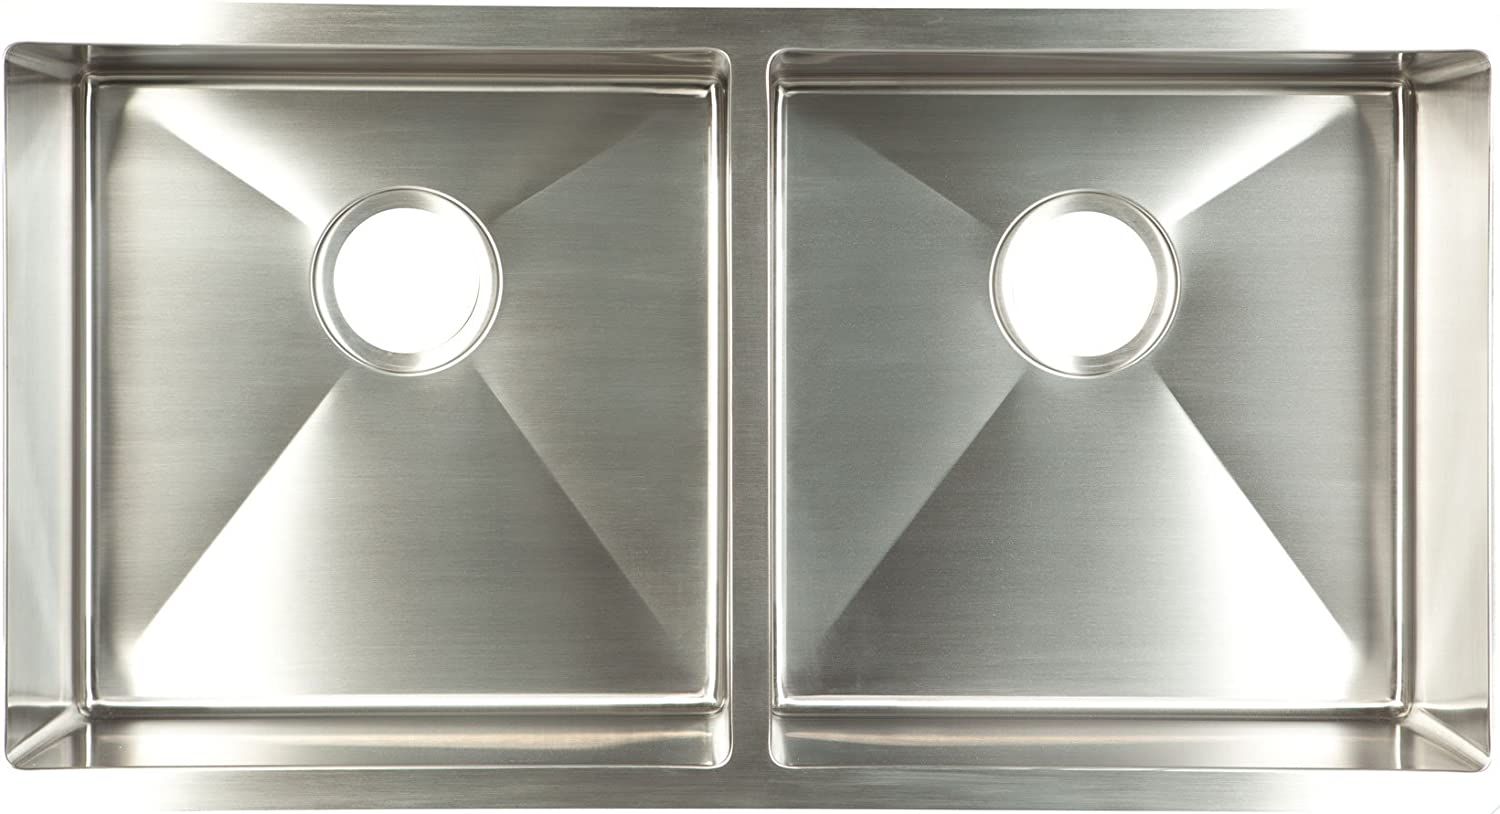 Limited time sale Franke USA UDTD32 10 Sink 35-in Stainless 67% OFF of fixed price Steel